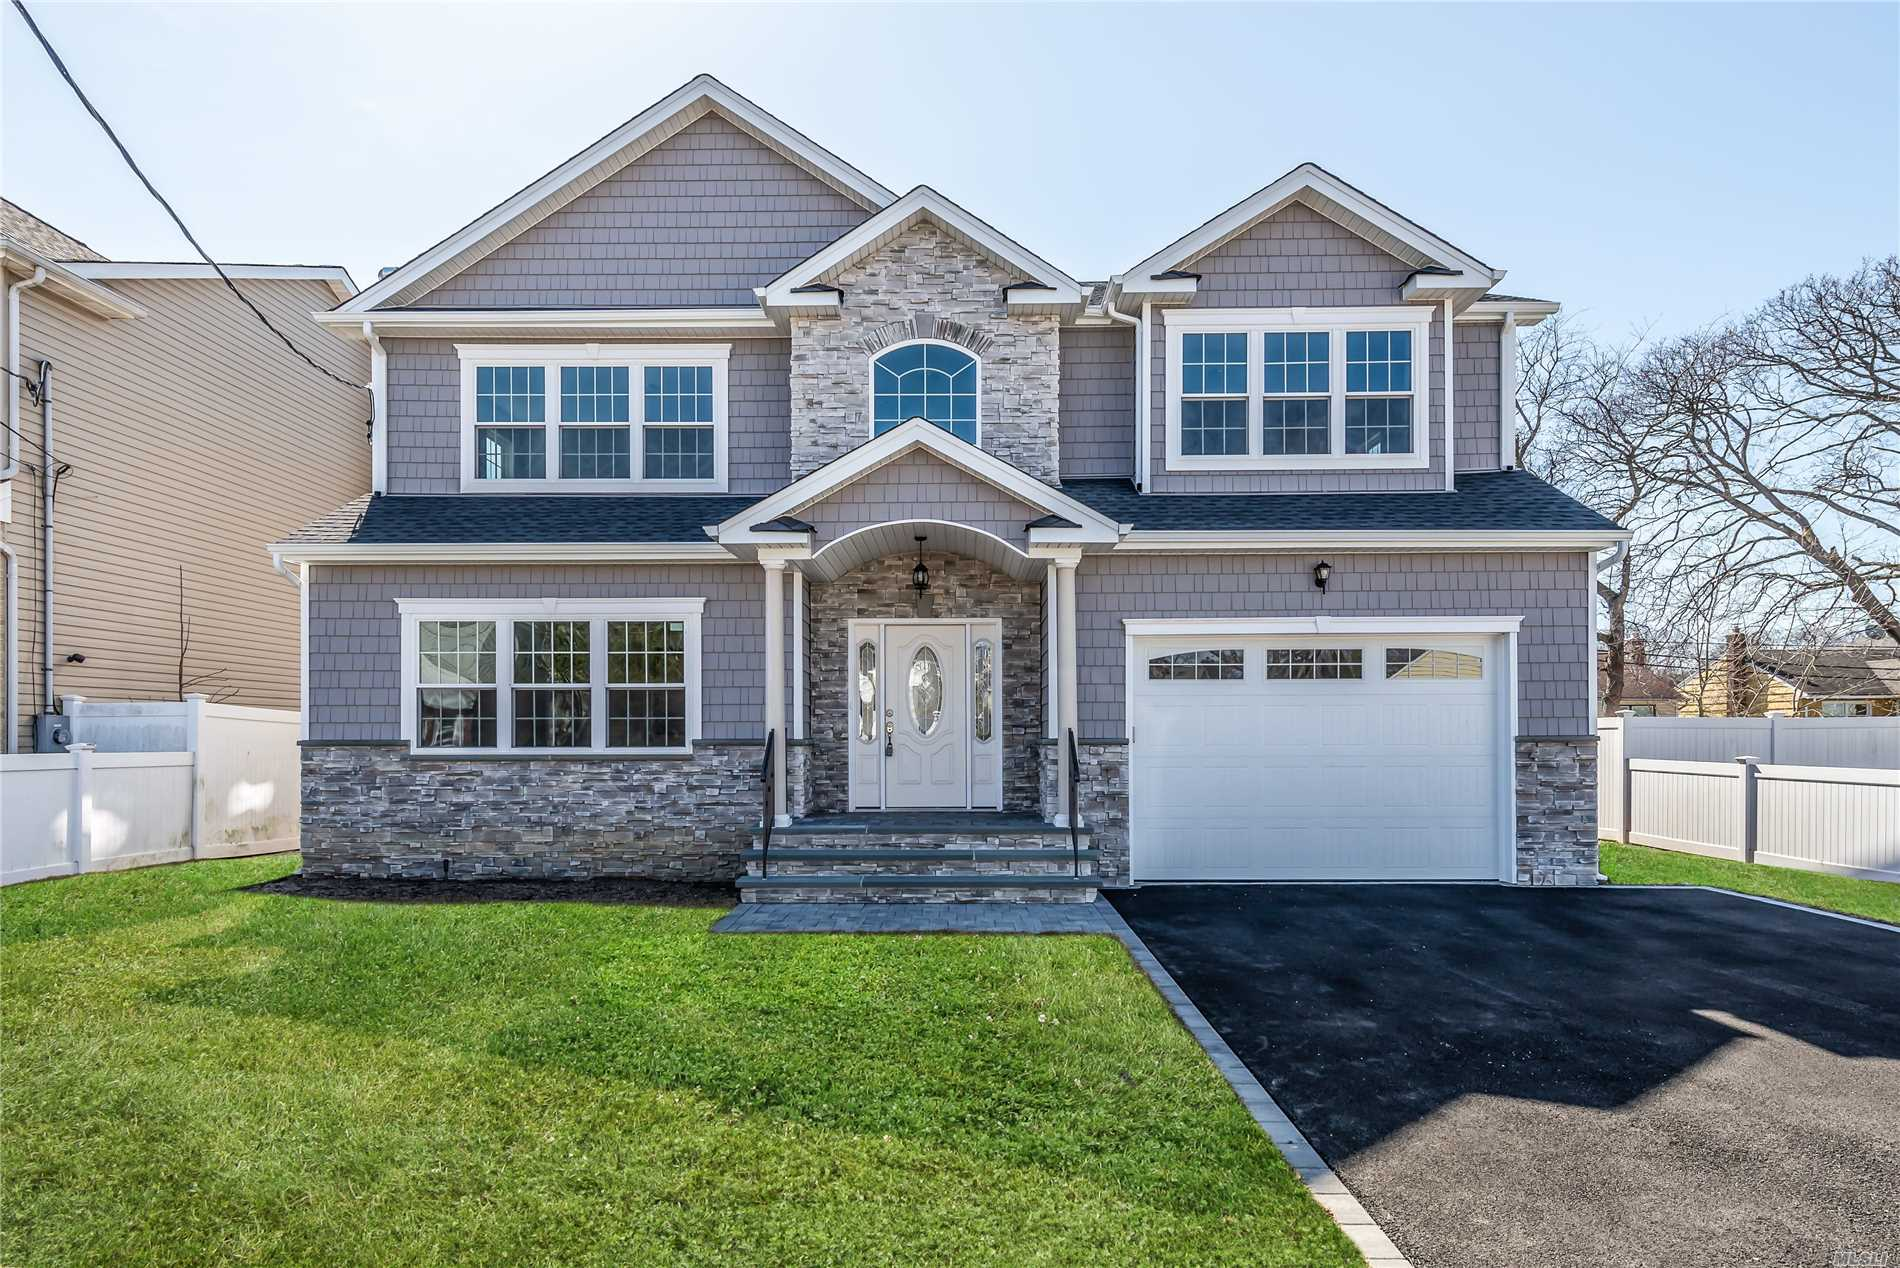 Stunning 4 Bedroom 2.5 Bath New Construction Colonial! Quality Build! Spacious Open Floor Plan, Gourmet Eat In Kitchen W/Stainless Steel Appliances, Wood Floors Throughout, Den W.Fireplace, 9 Foot Ceilings On 1st Fl, 8Ft Ceilings On 2nd Fl & Basement! Laundry Hookup On 2nd Fl. Energy Star Efficient Home!